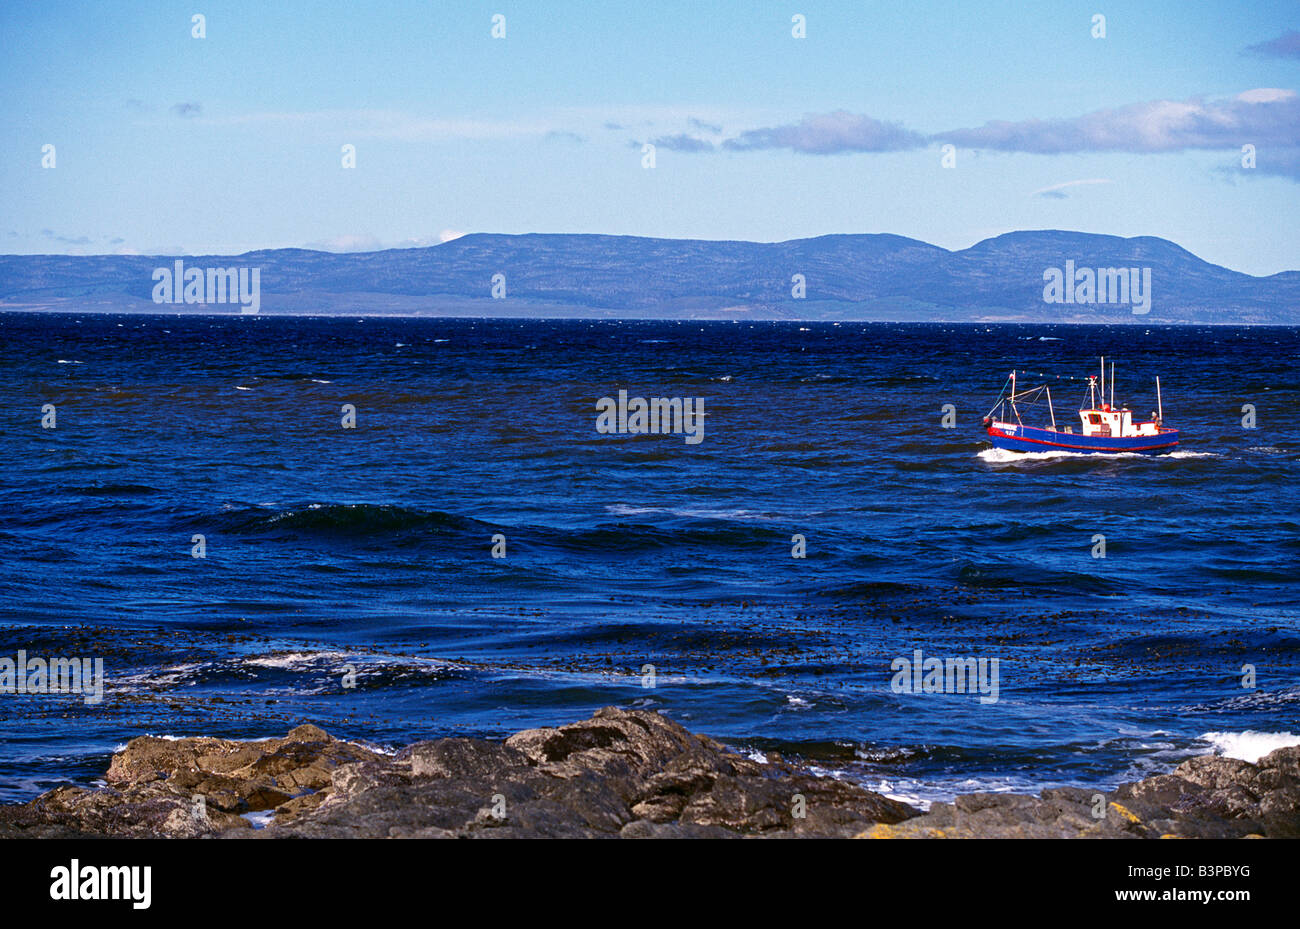 Chile, Southern Patagonia. Fishing boat on Straits of Magellan seen from Fuerte Bulnes - Stock Image